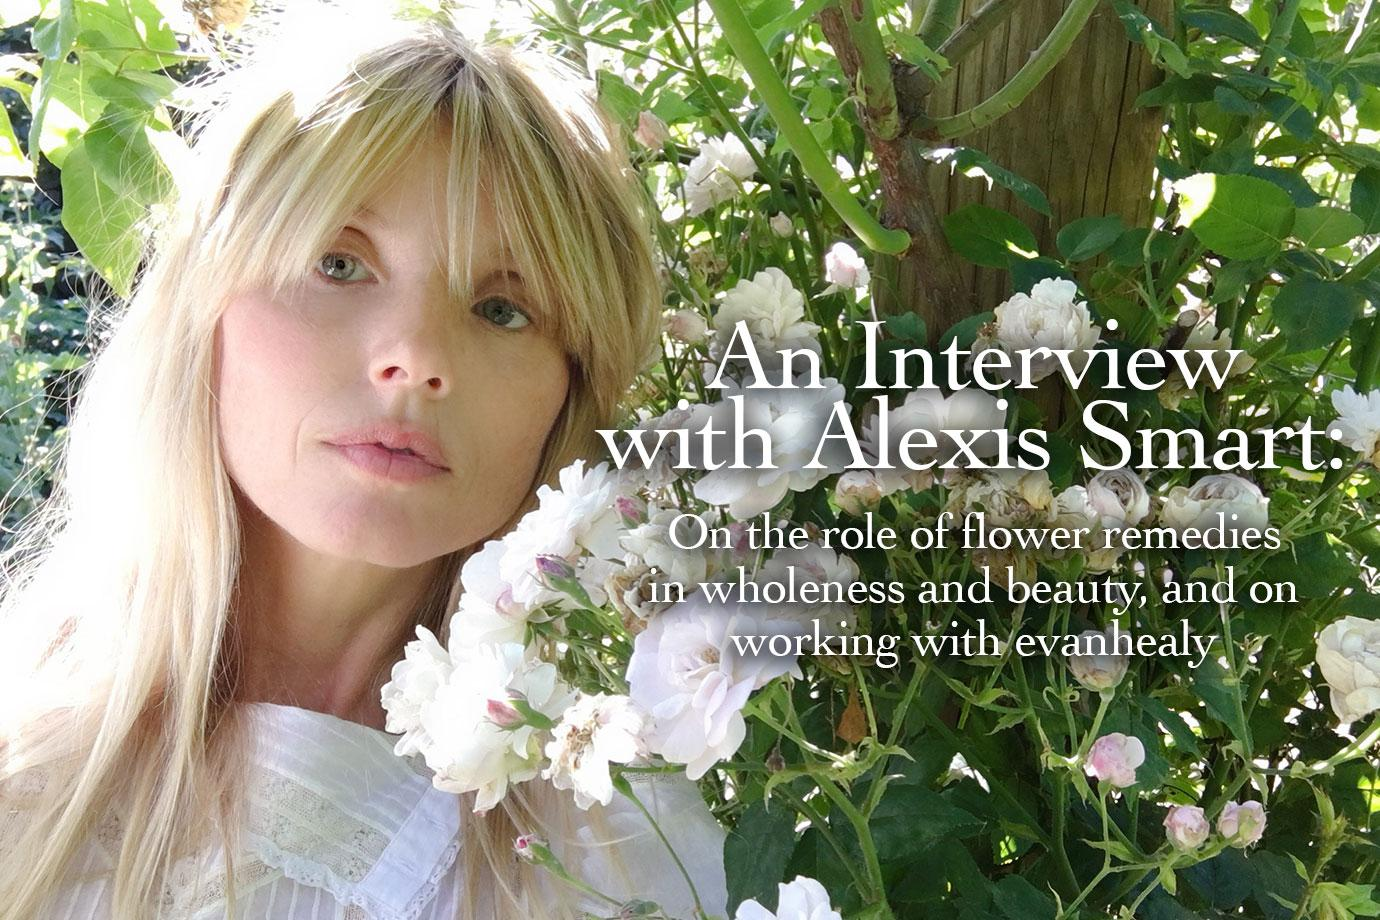 An Interview with Alexis Smart - evanhealy